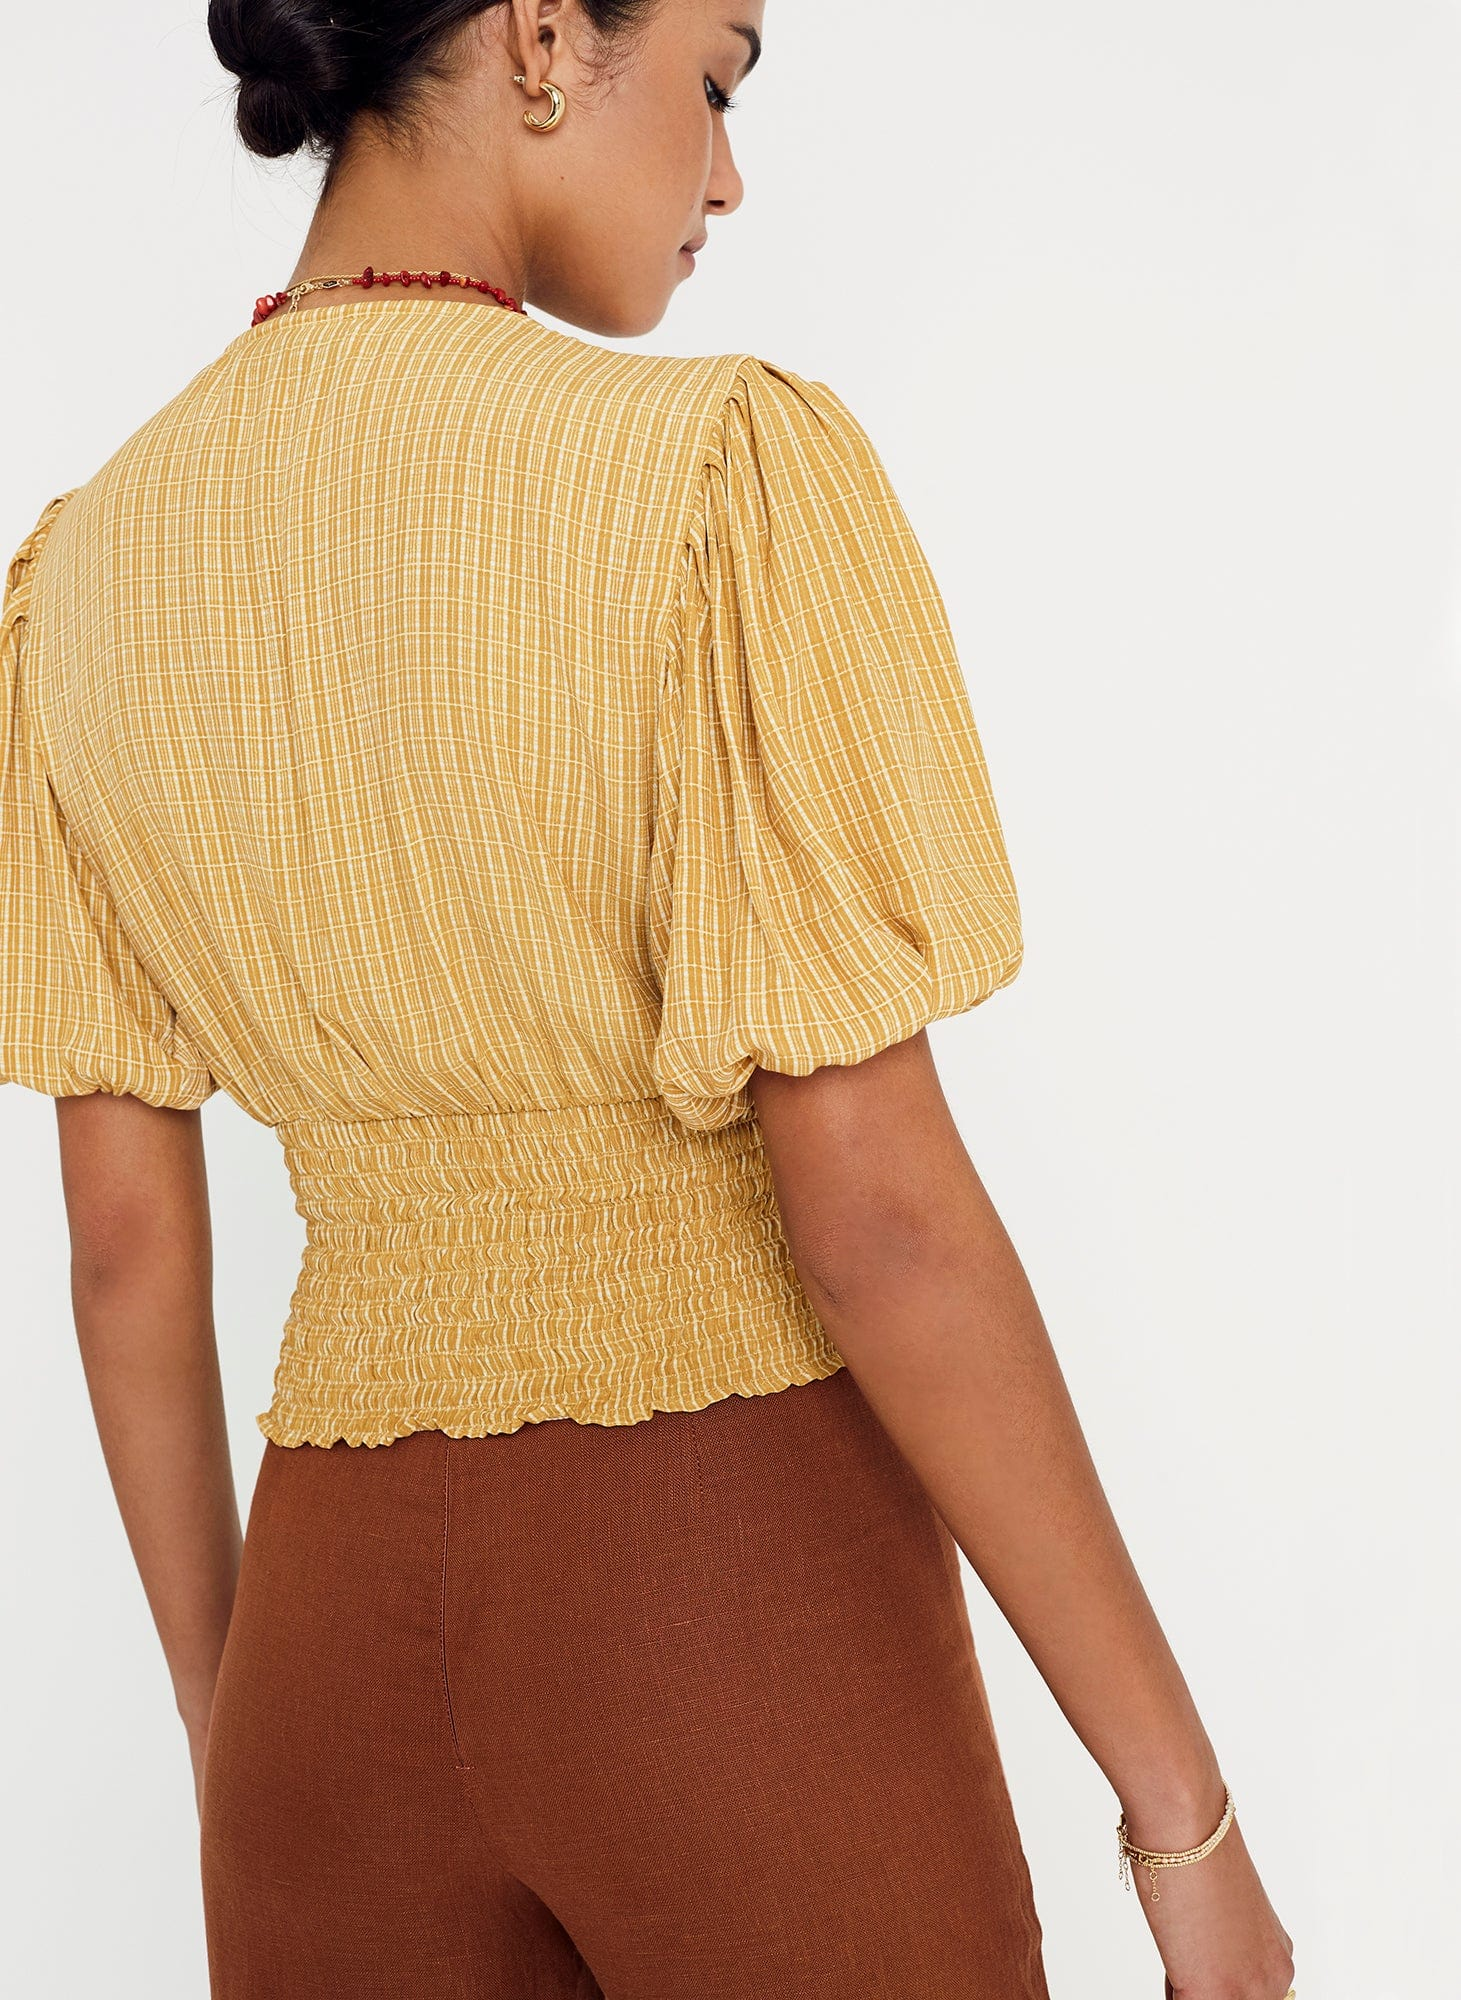 Ceretti Check Print - Desert - Oma Top